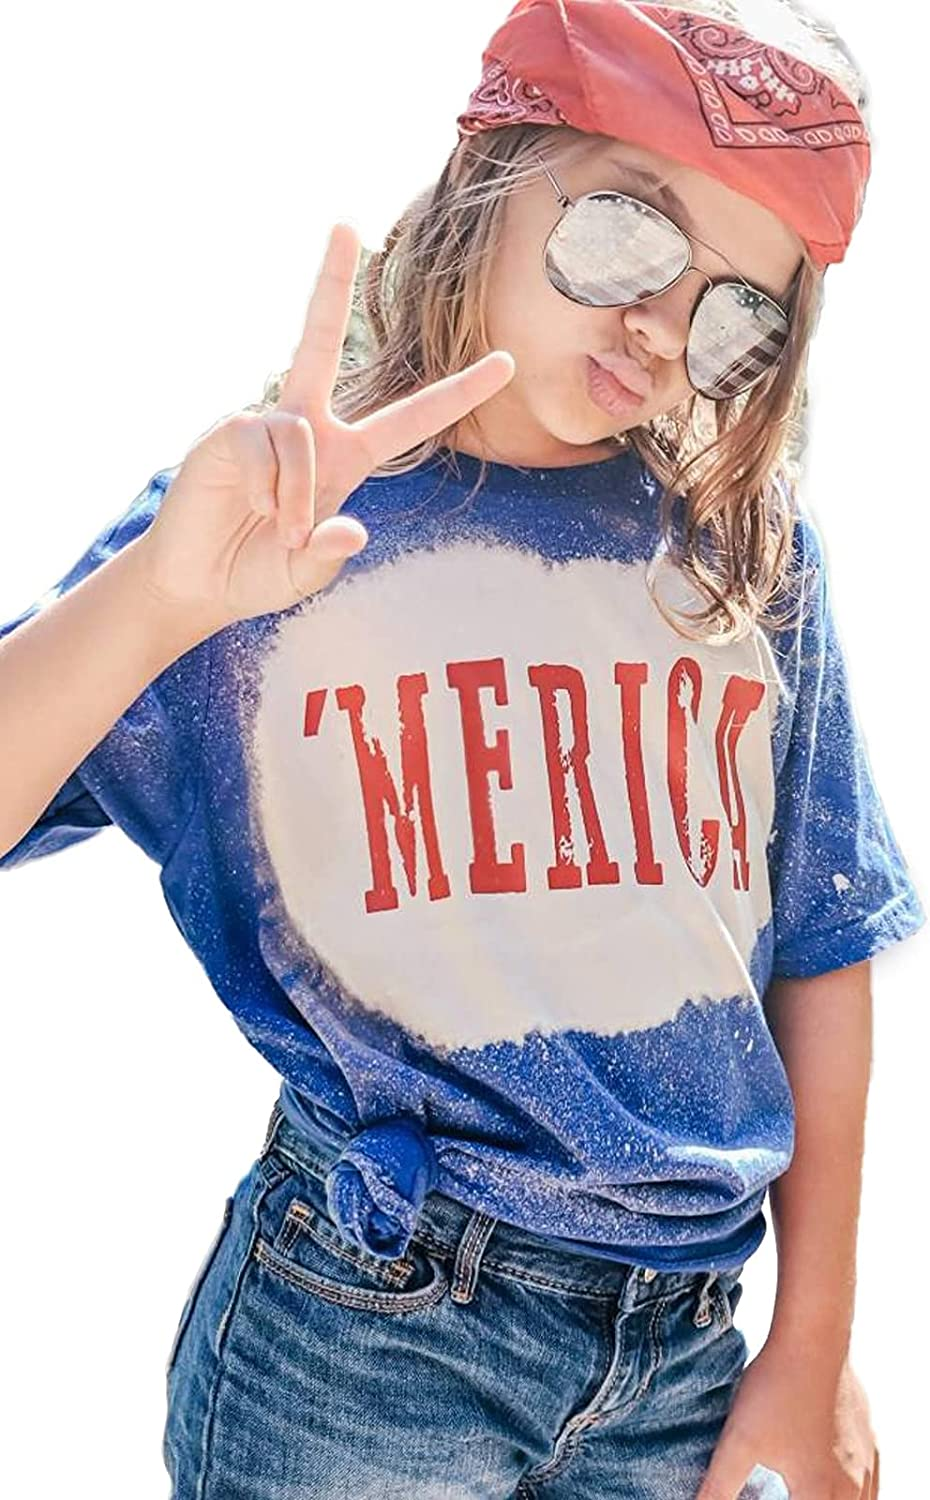 Baby Boy Girl 4 of July Outfit Bleached America Letter Print Shirts Unisex Toddler Infant Vintage Patriotic Short Sleeve Tee